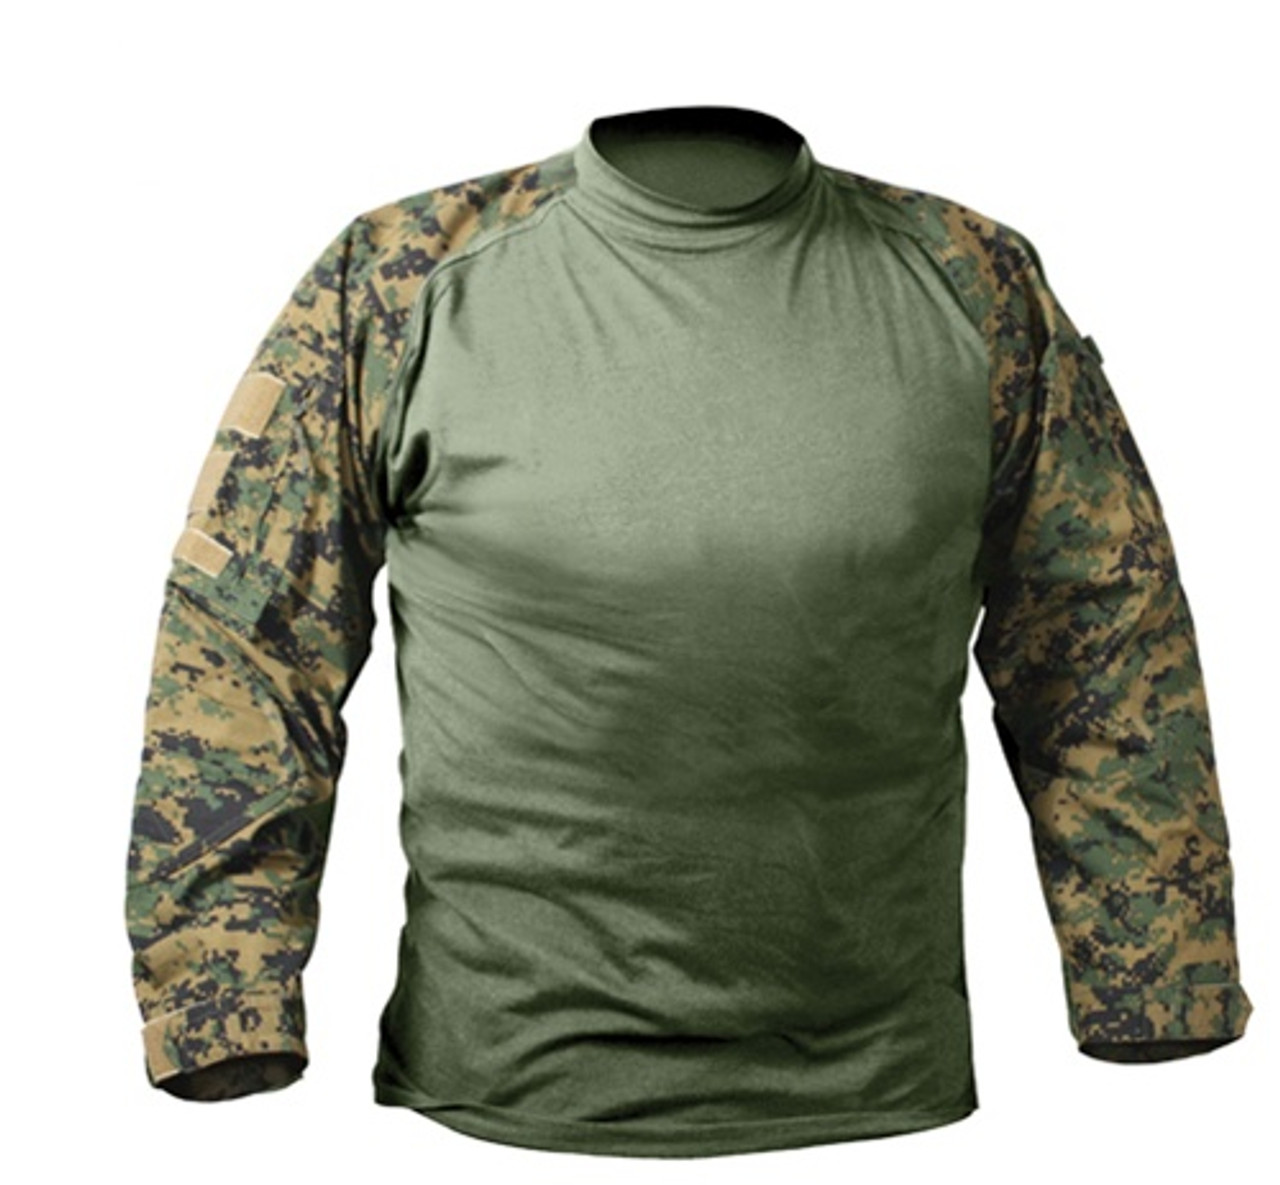 Woodland Digital Camouflage Combat Shirt from Hessen Tactical